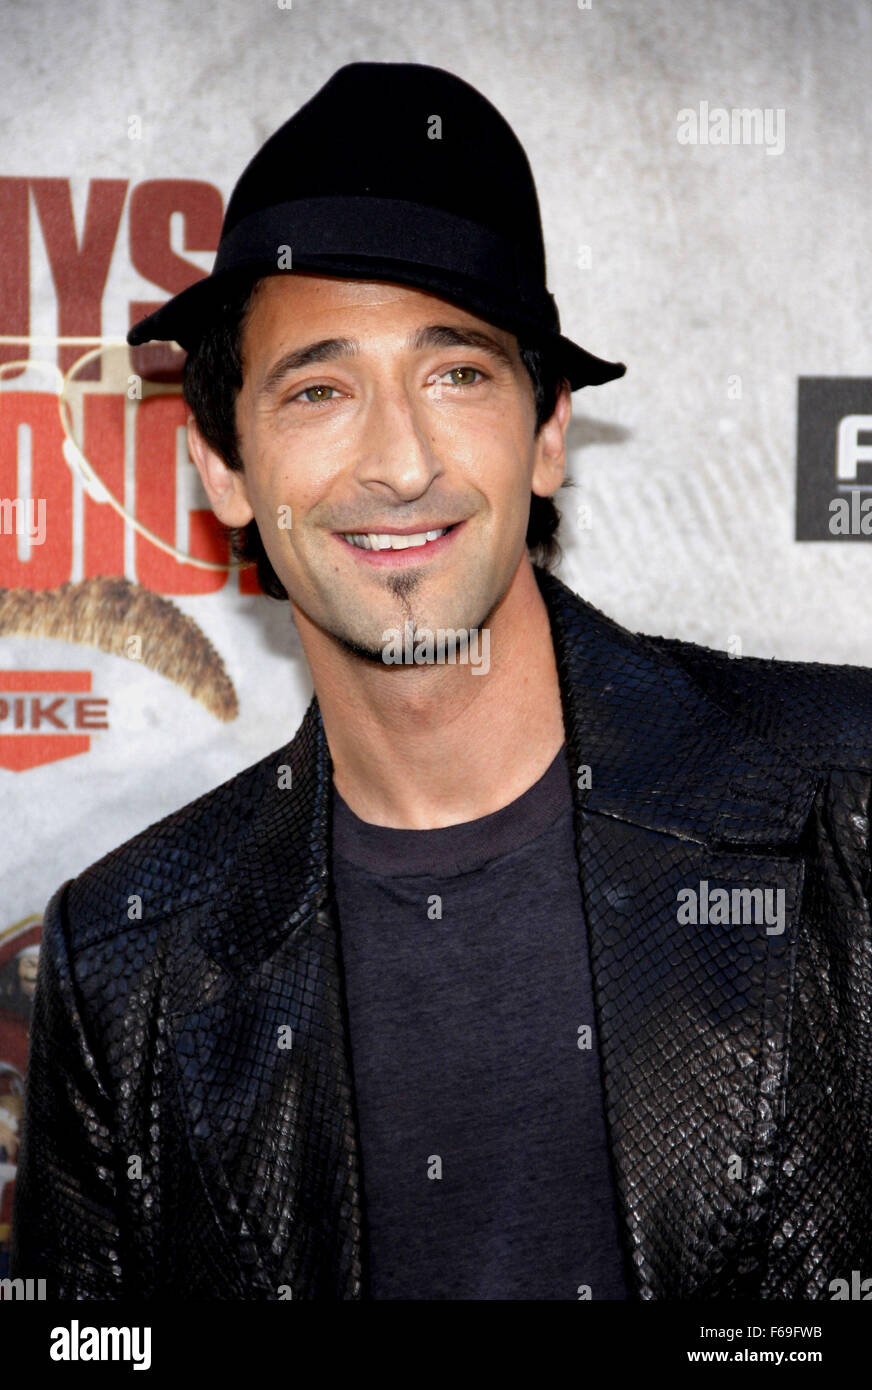 Adrien Brody at the 2010 Guys Choice Awards held at the Sony Pictures Studios in Culver City, California, Unite - Stock Image